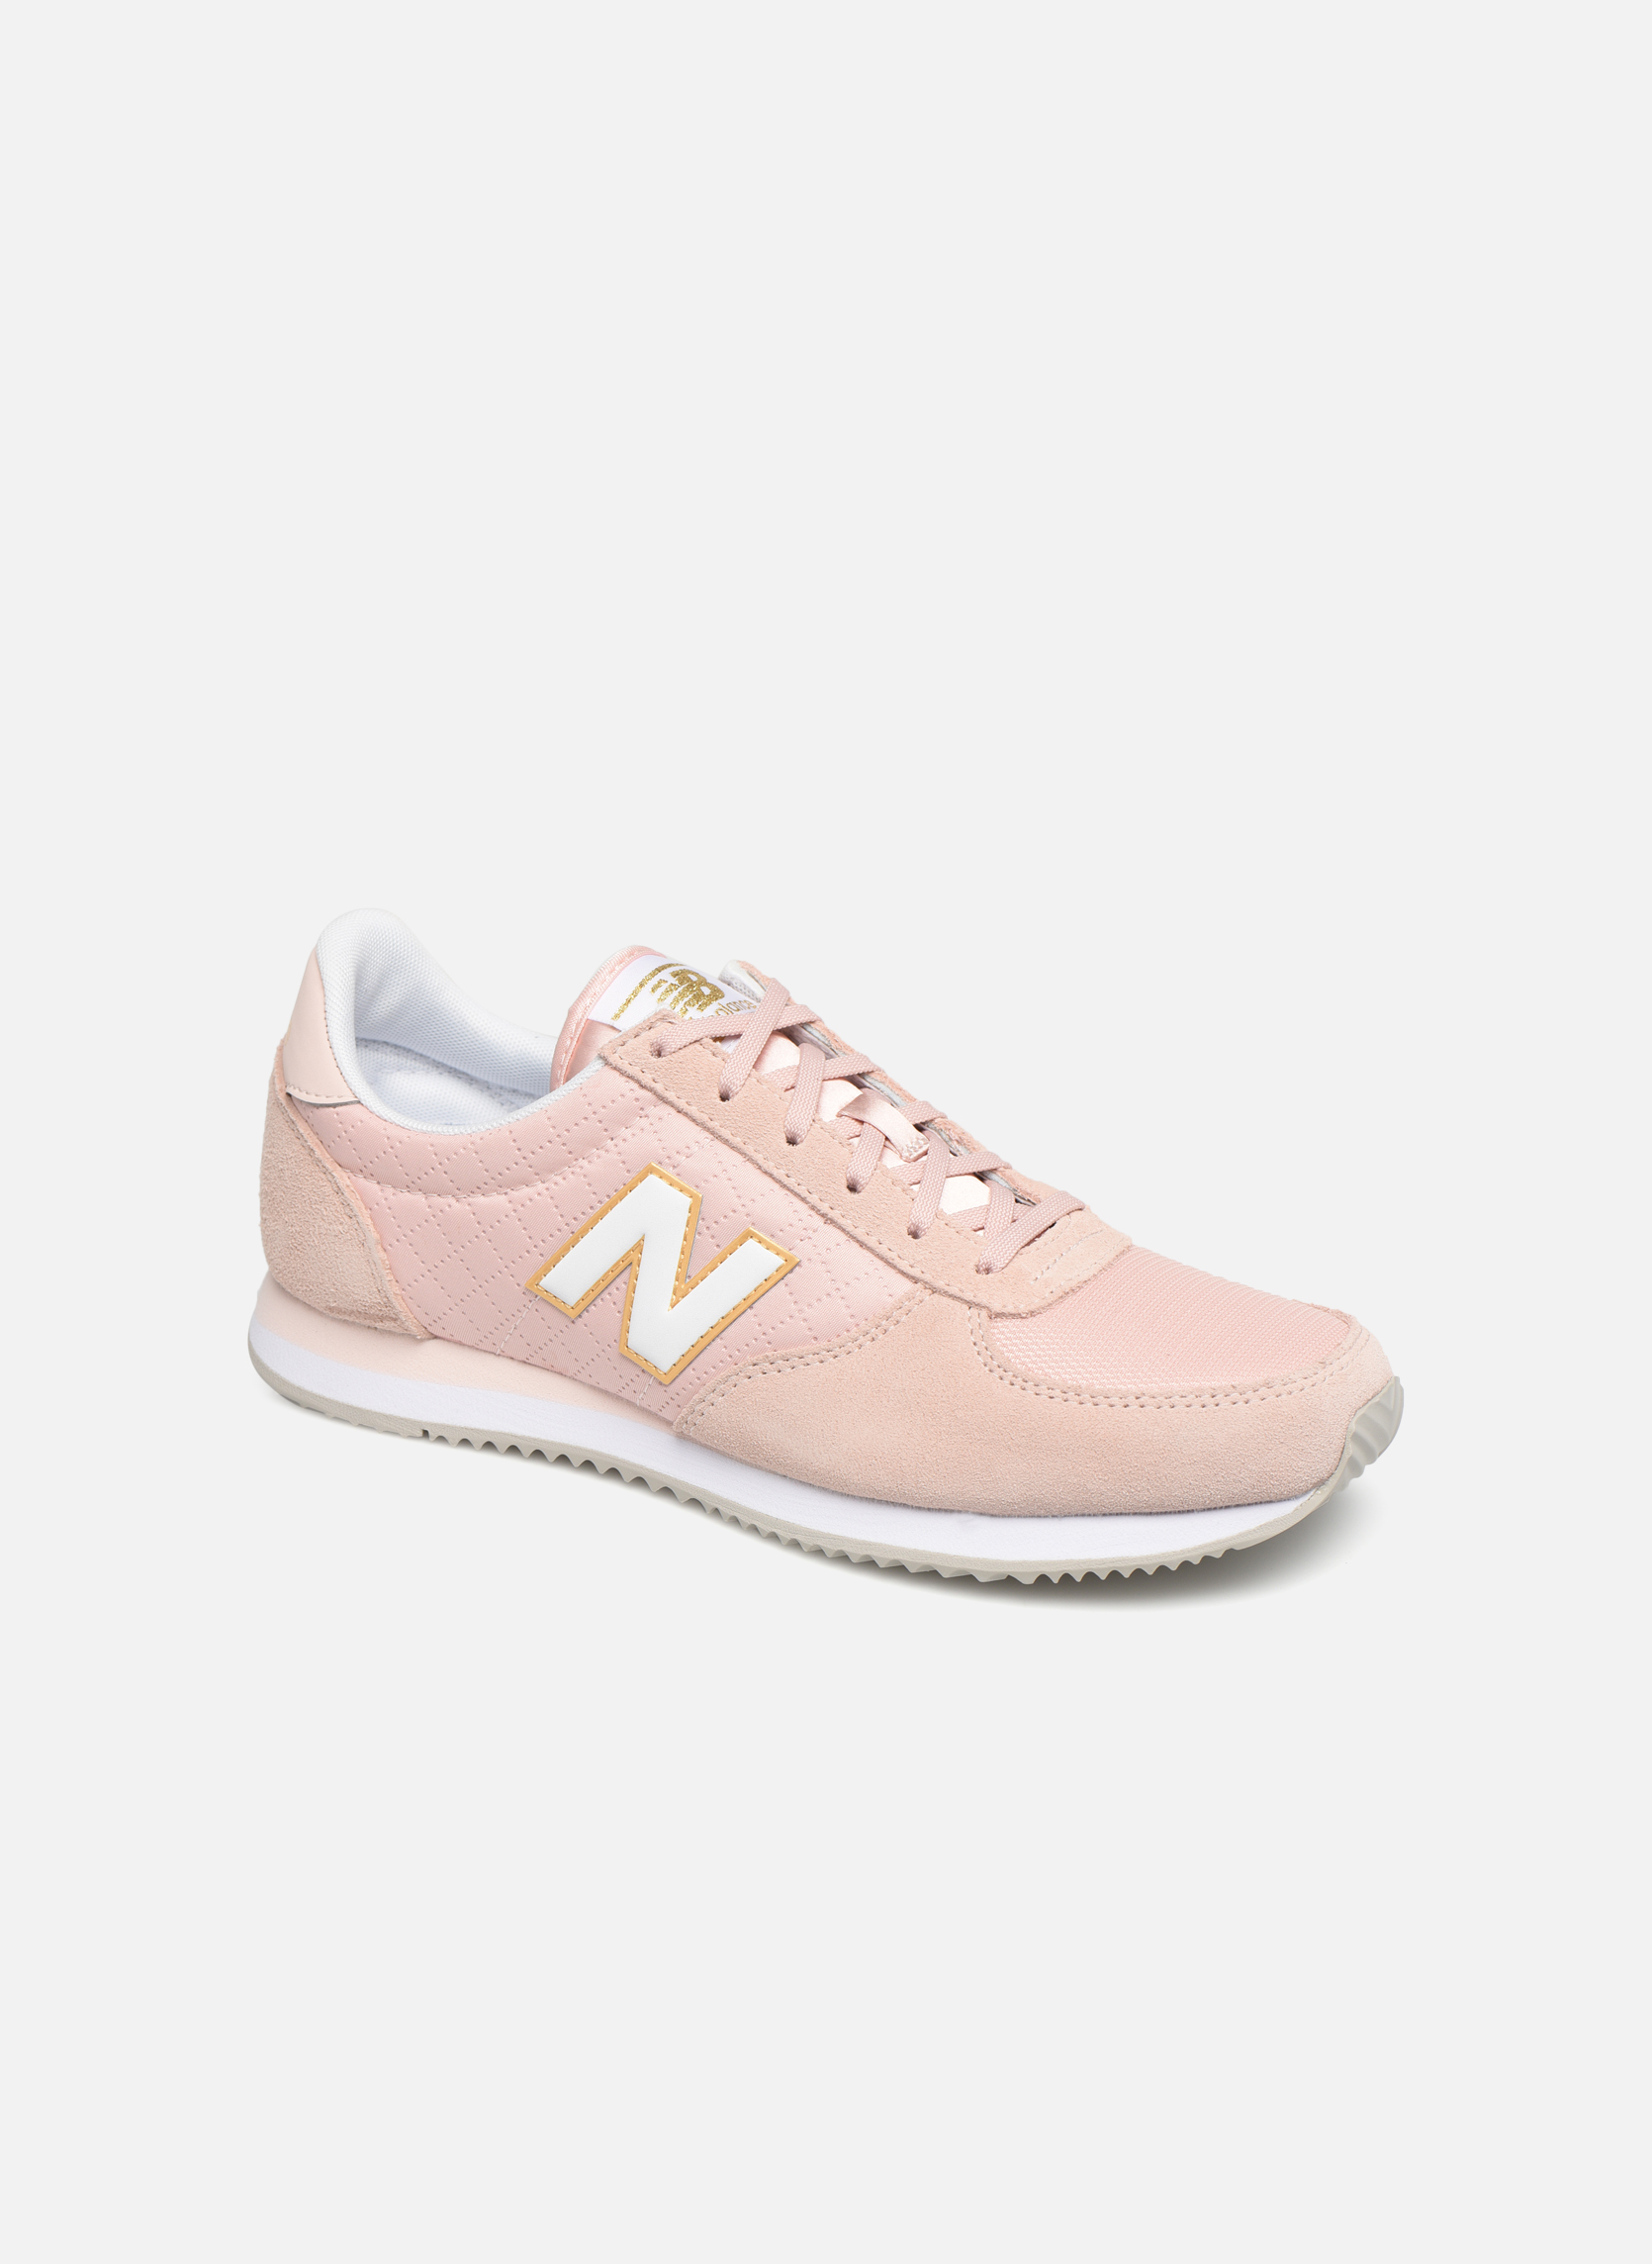 Sneakers U220 W by New Balance